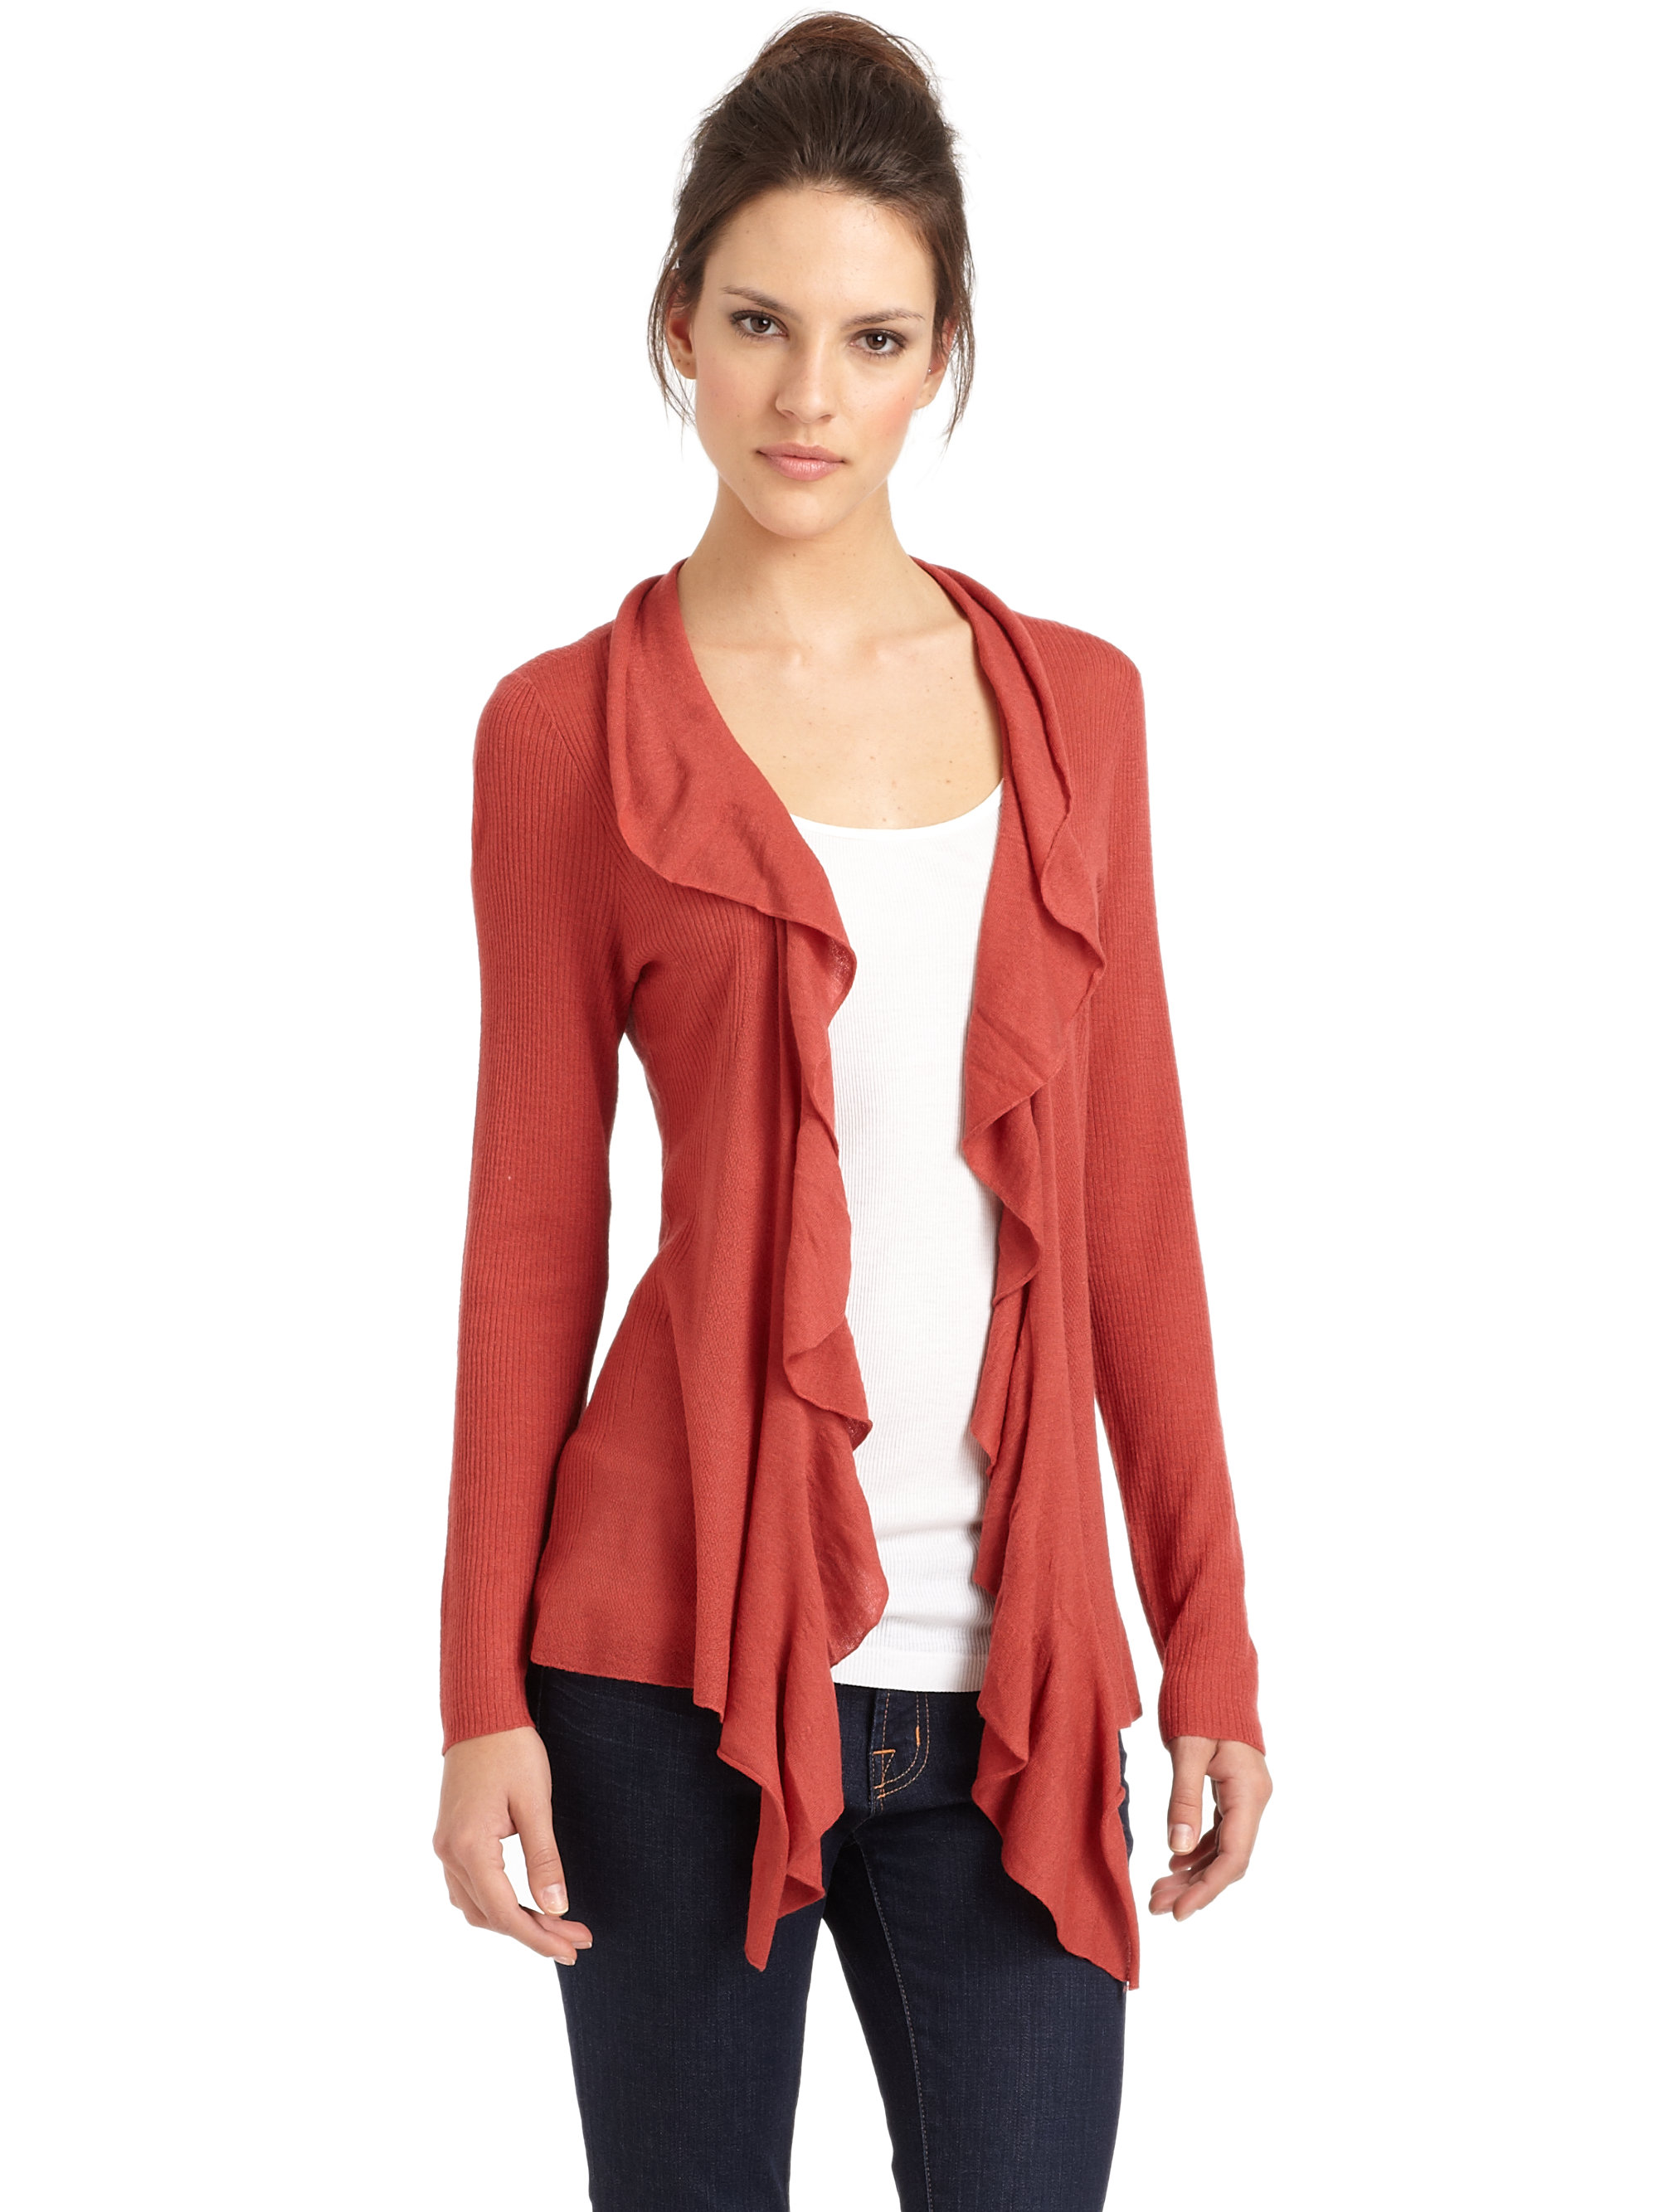 Eileen fisher Ruffle Cardigan in Red | Lyst